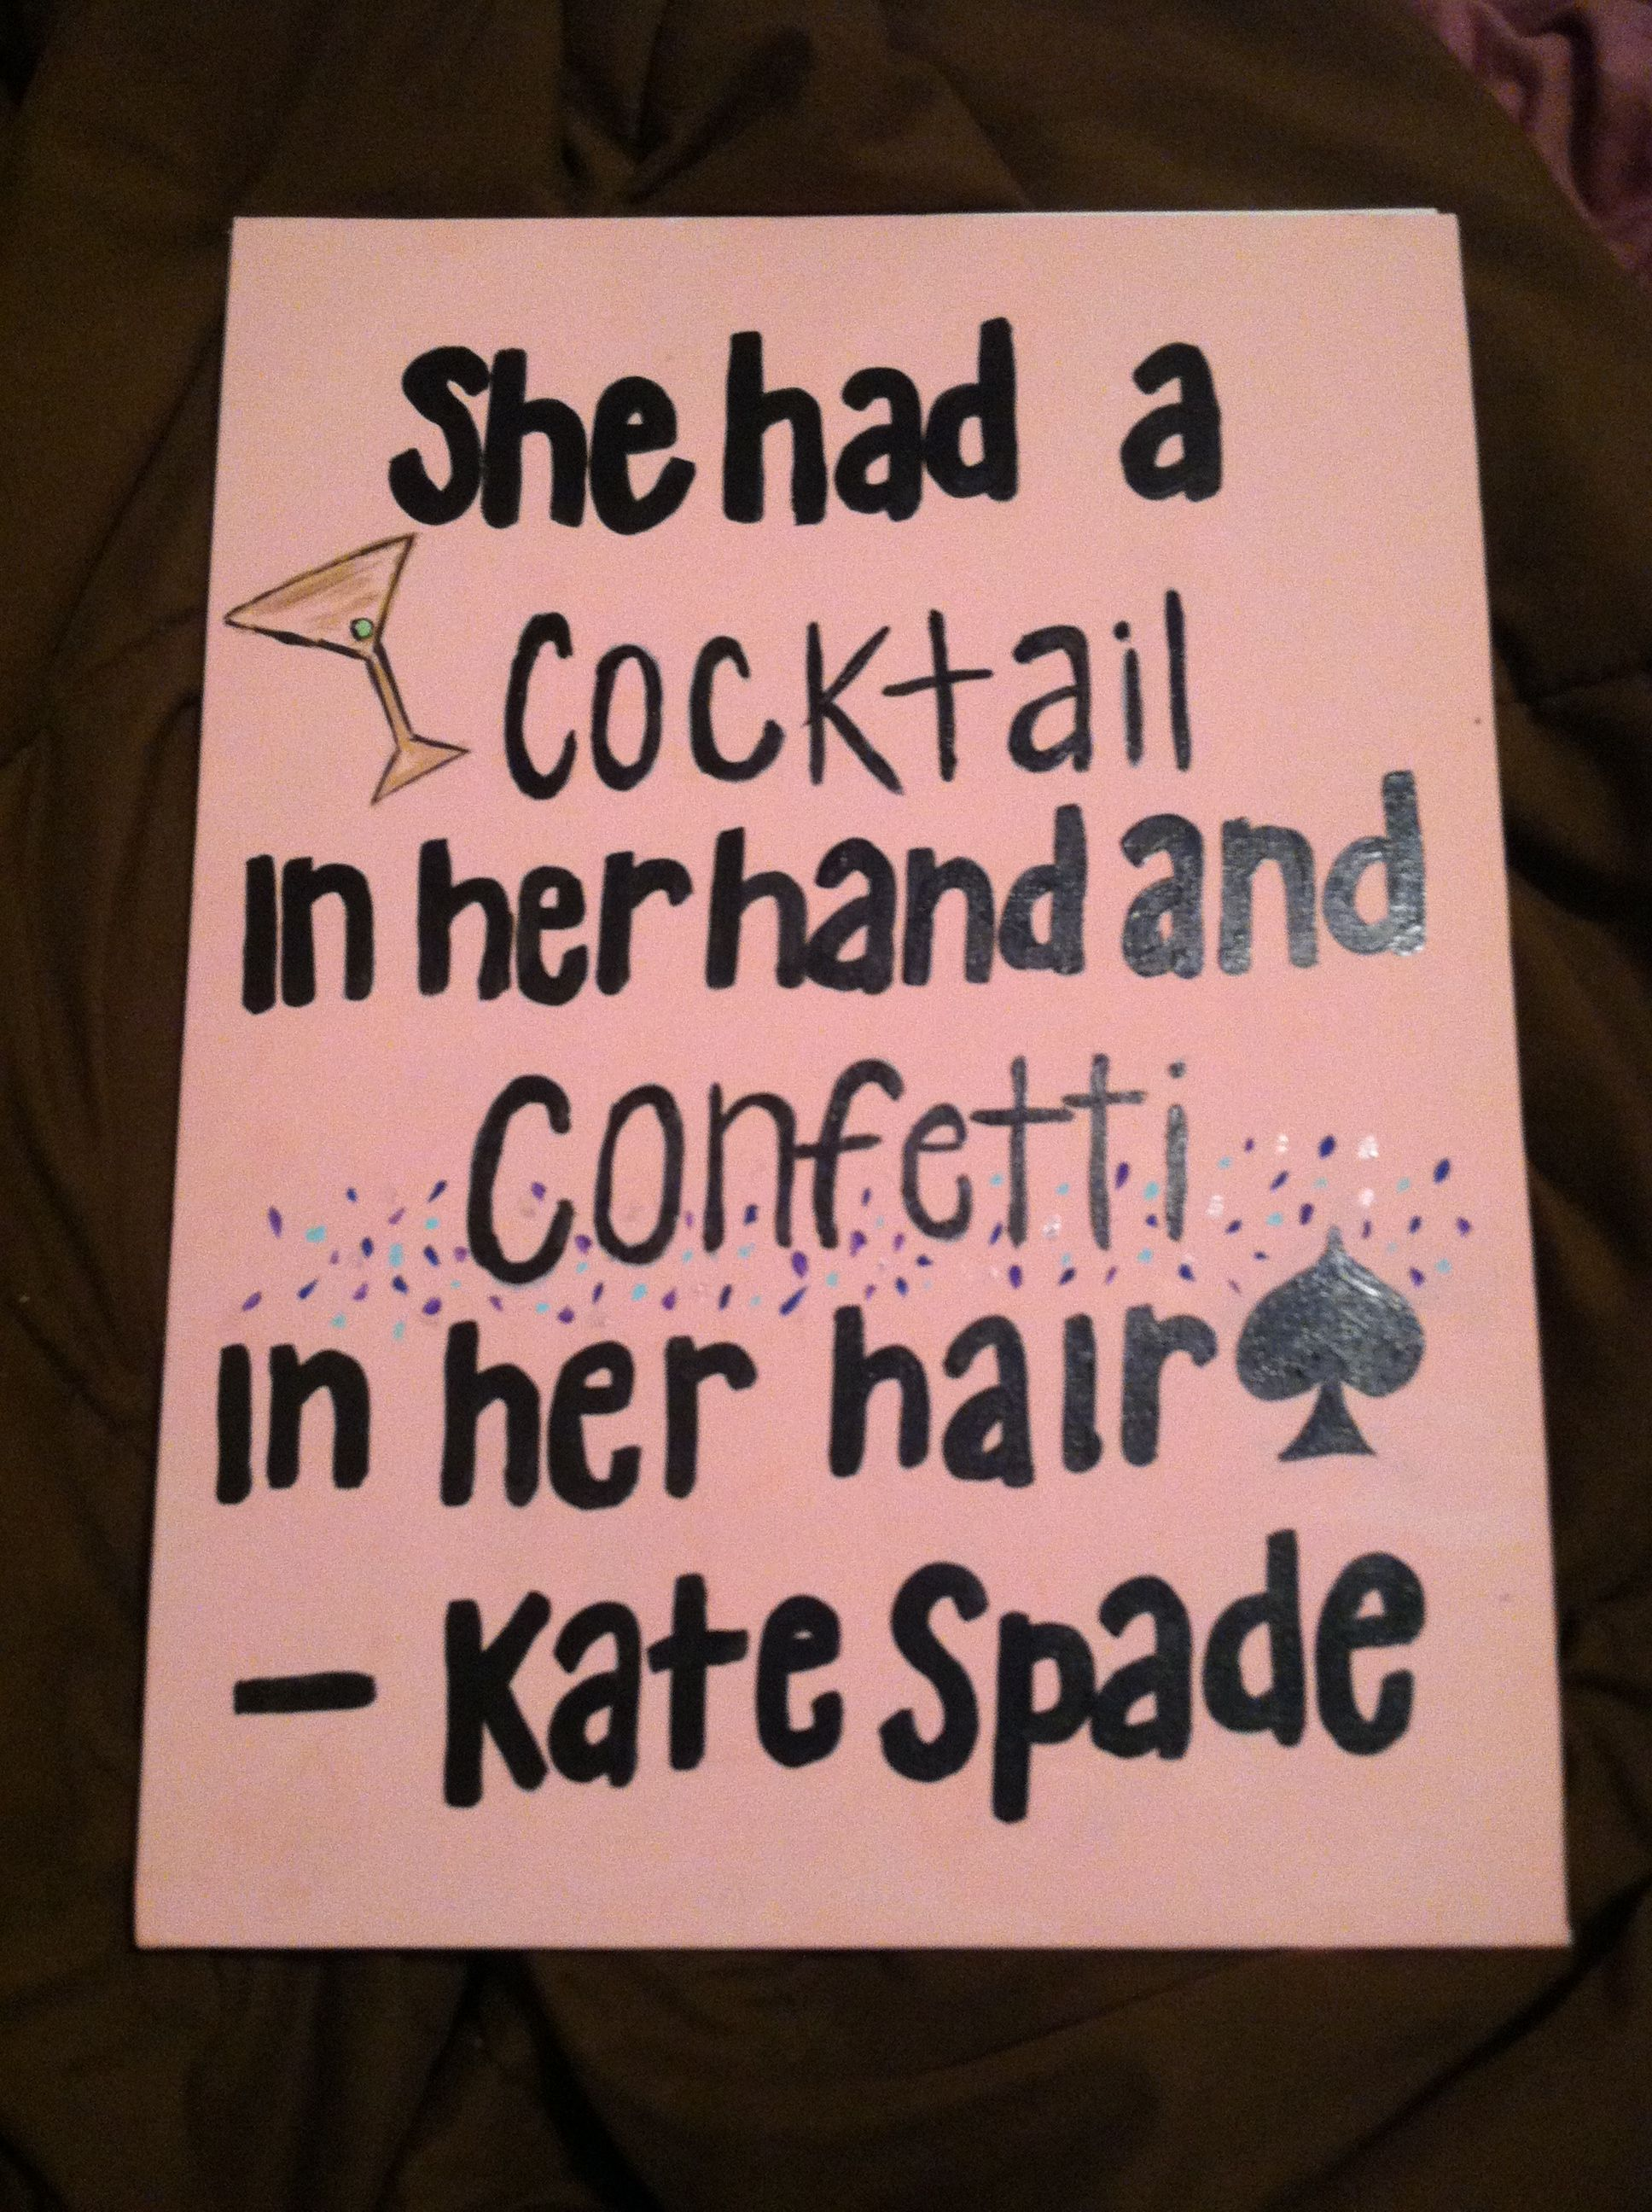 Looking forward to the days when I can say this... #citylife #katespade